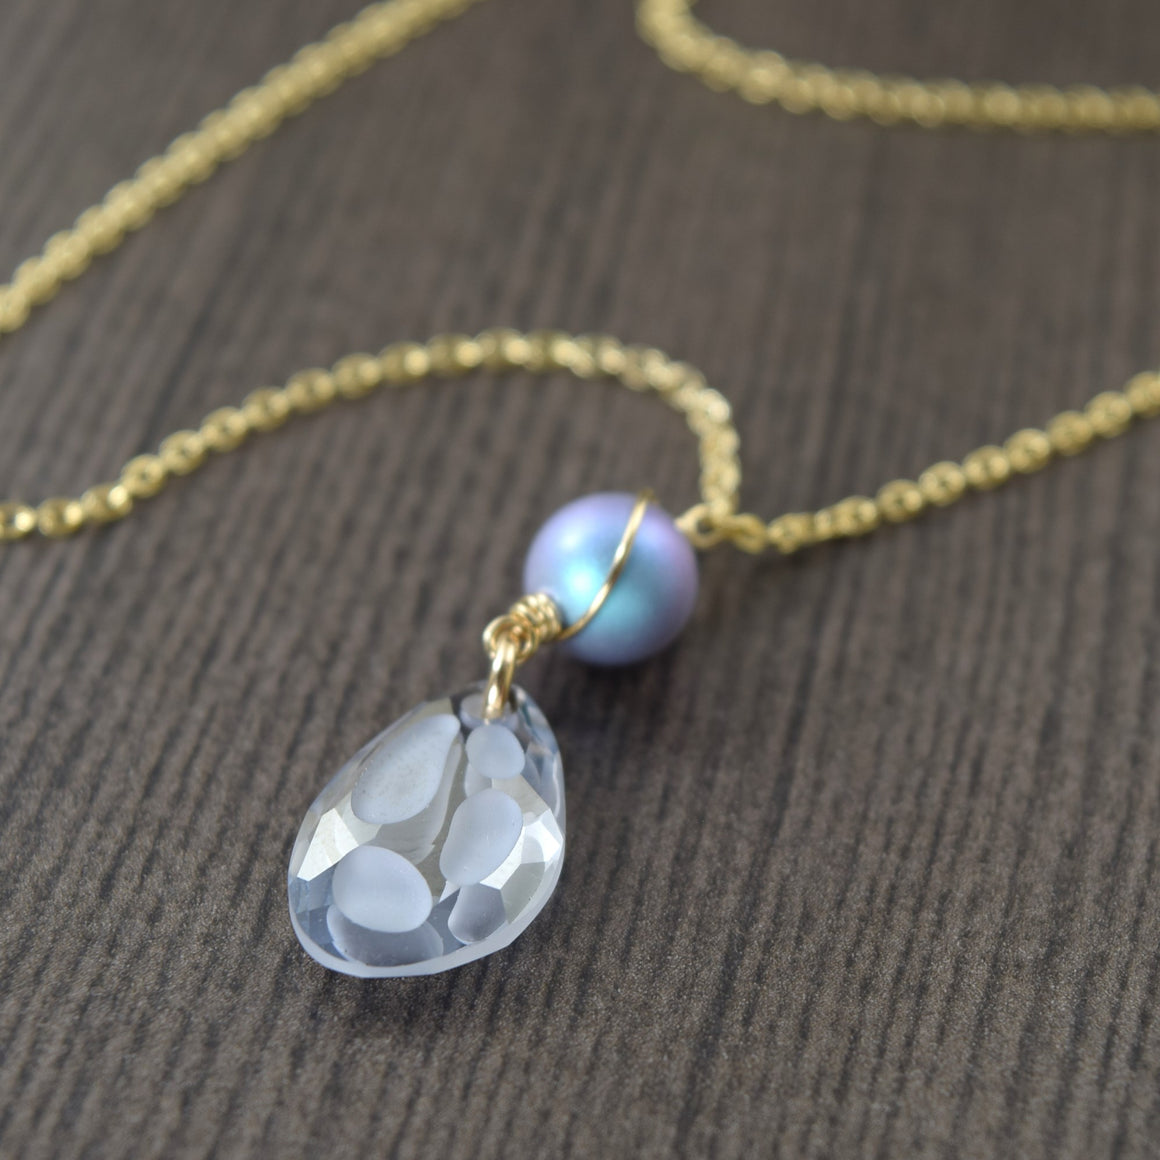 Light blue swarovski crystal butterfly wing with crystal pearl accent on gold filled chain